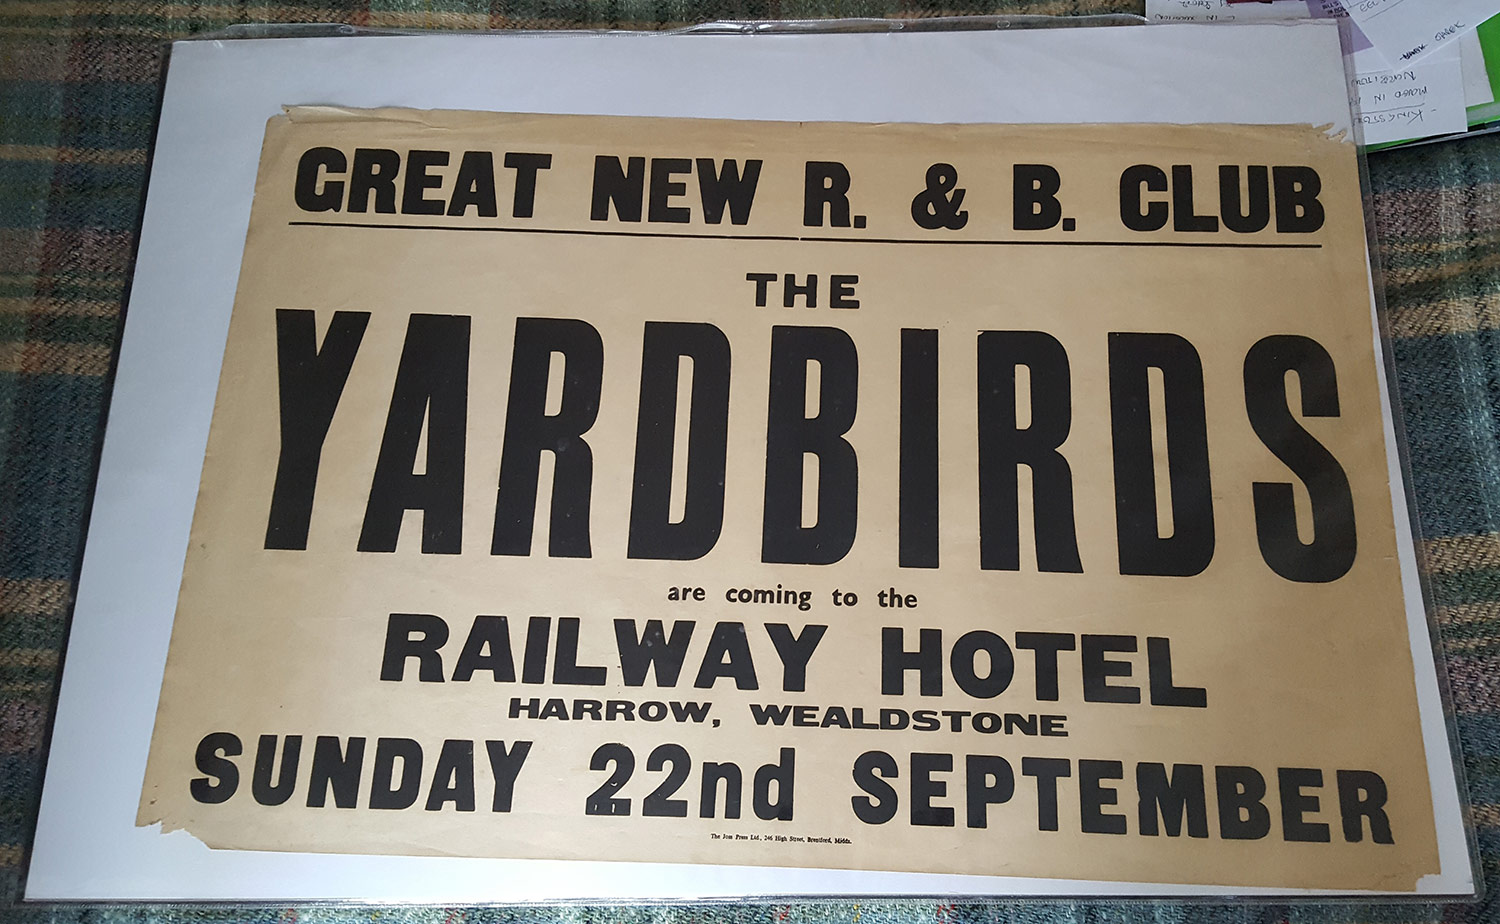 Poster for The Yardbirds at the Railway Hotel.